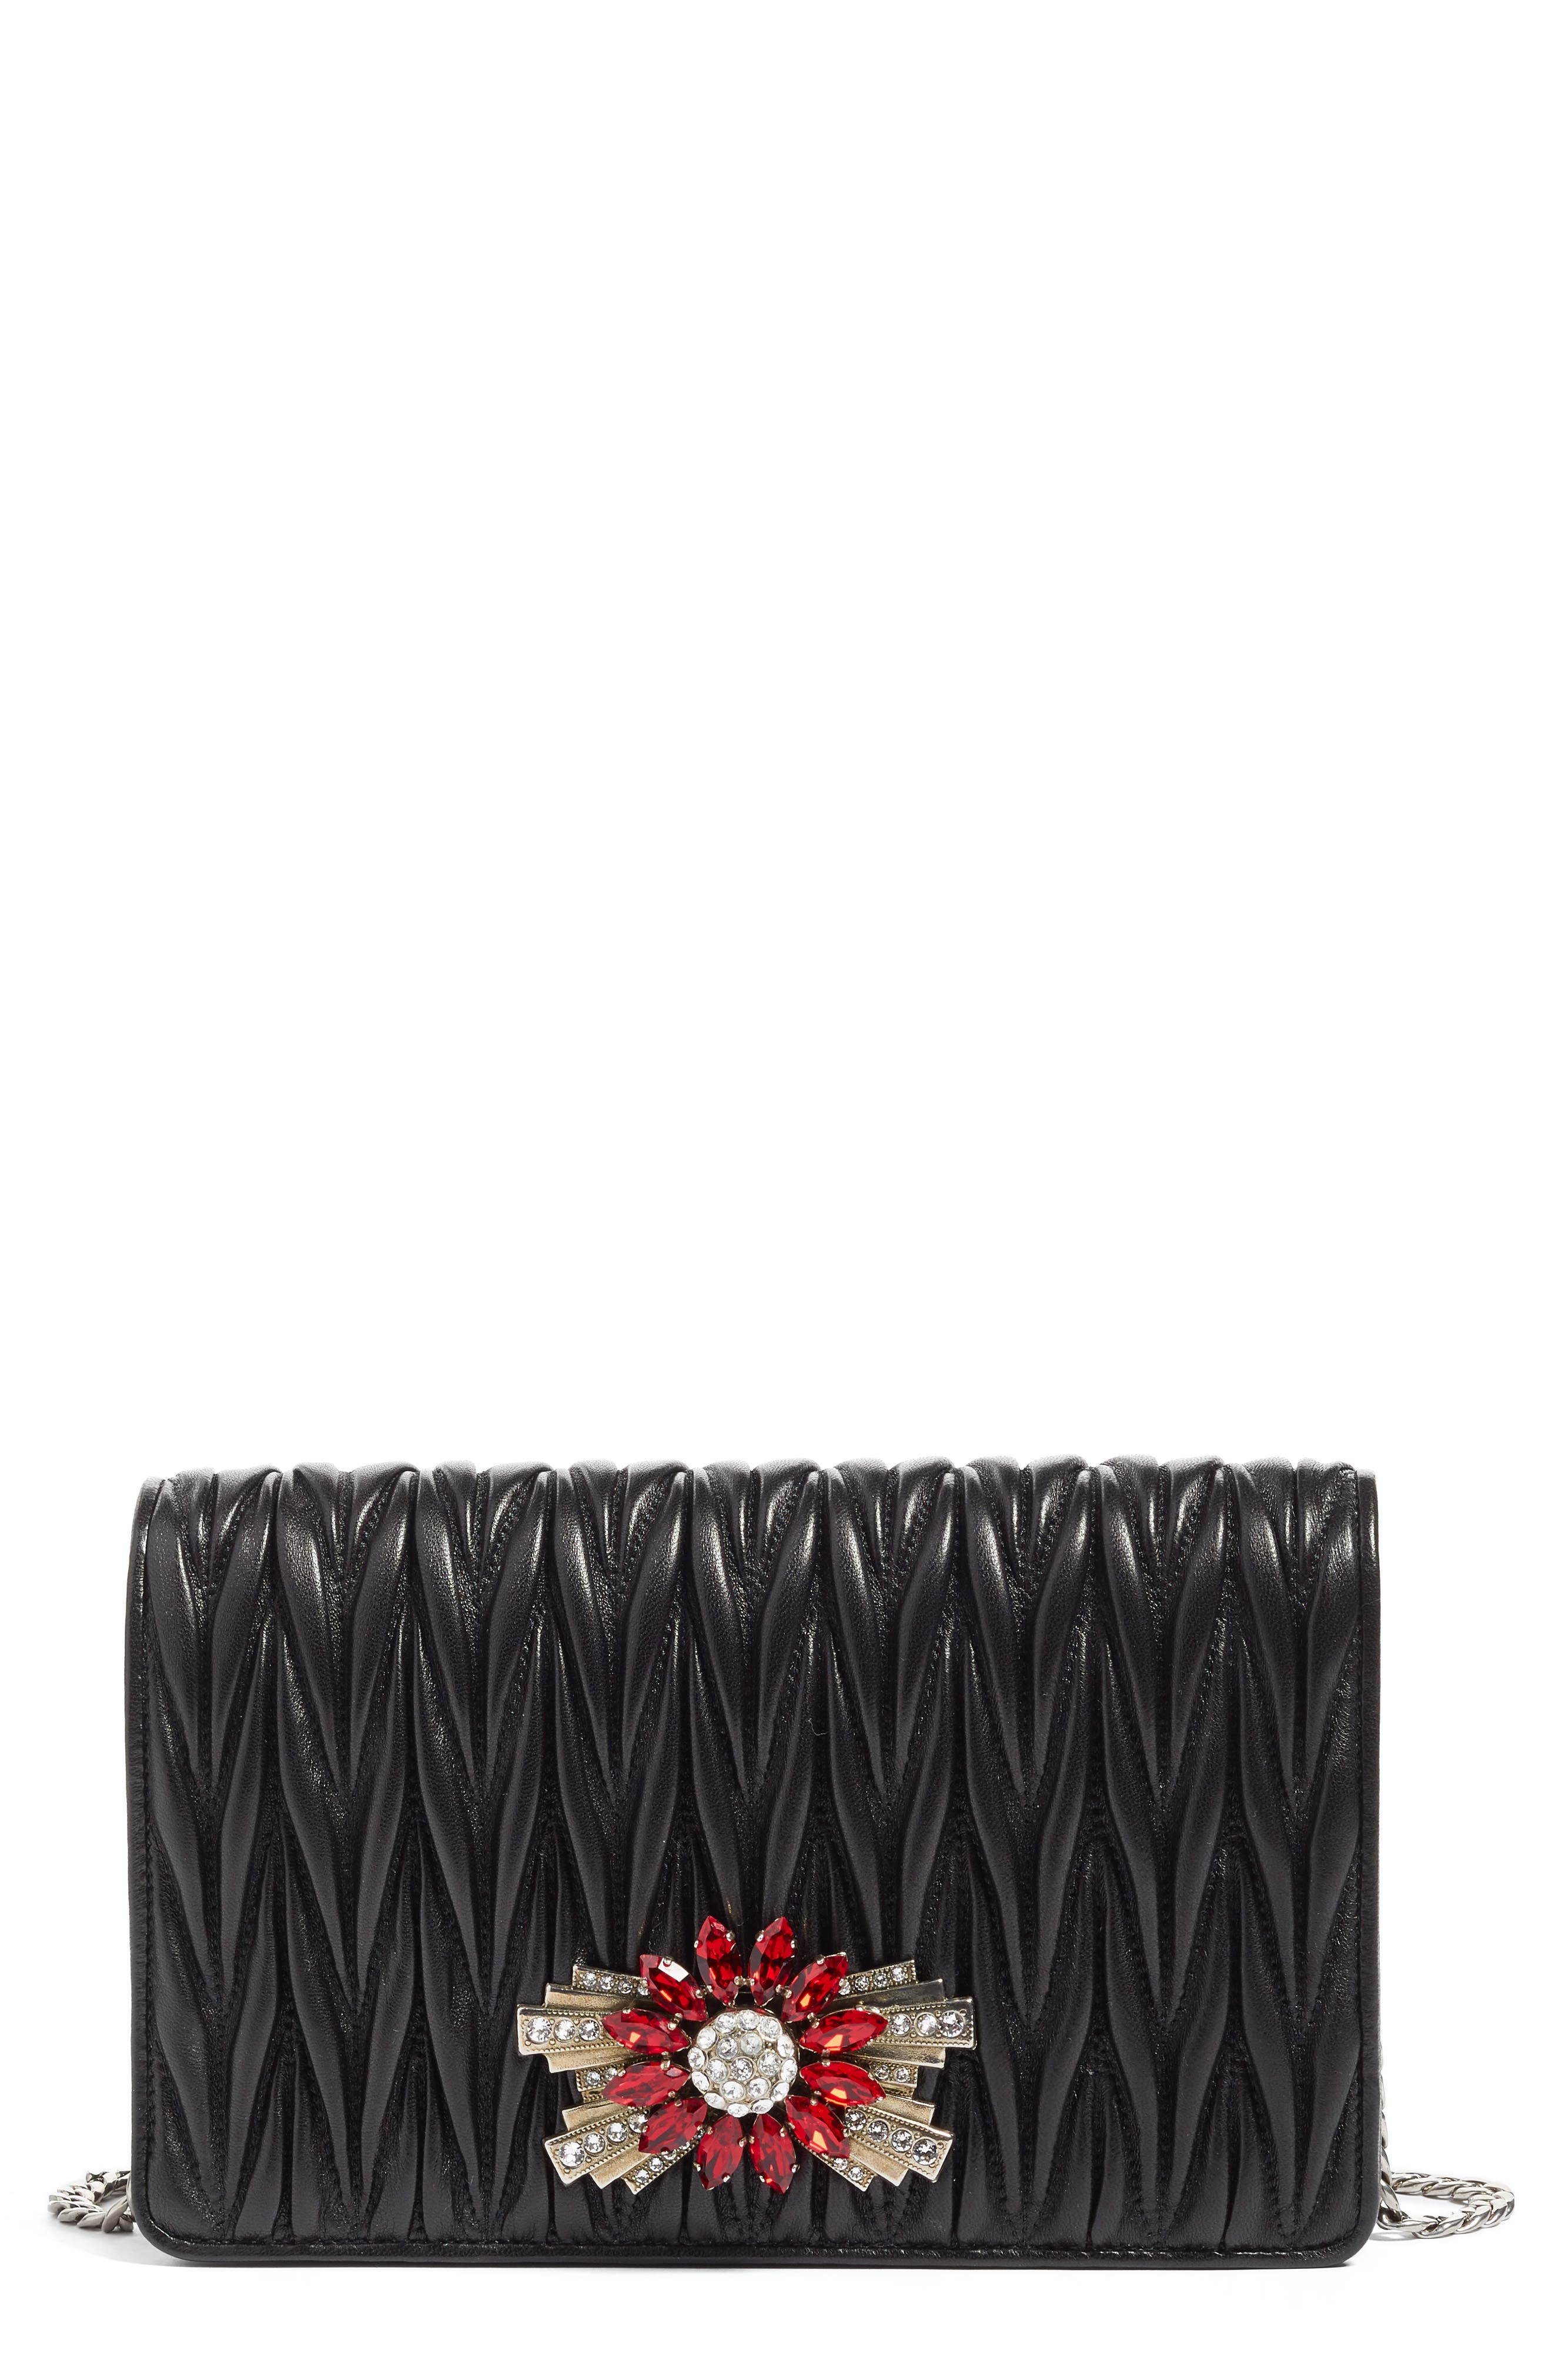 Miu Miu Delice Matelassé Leather Wallet on a Chain